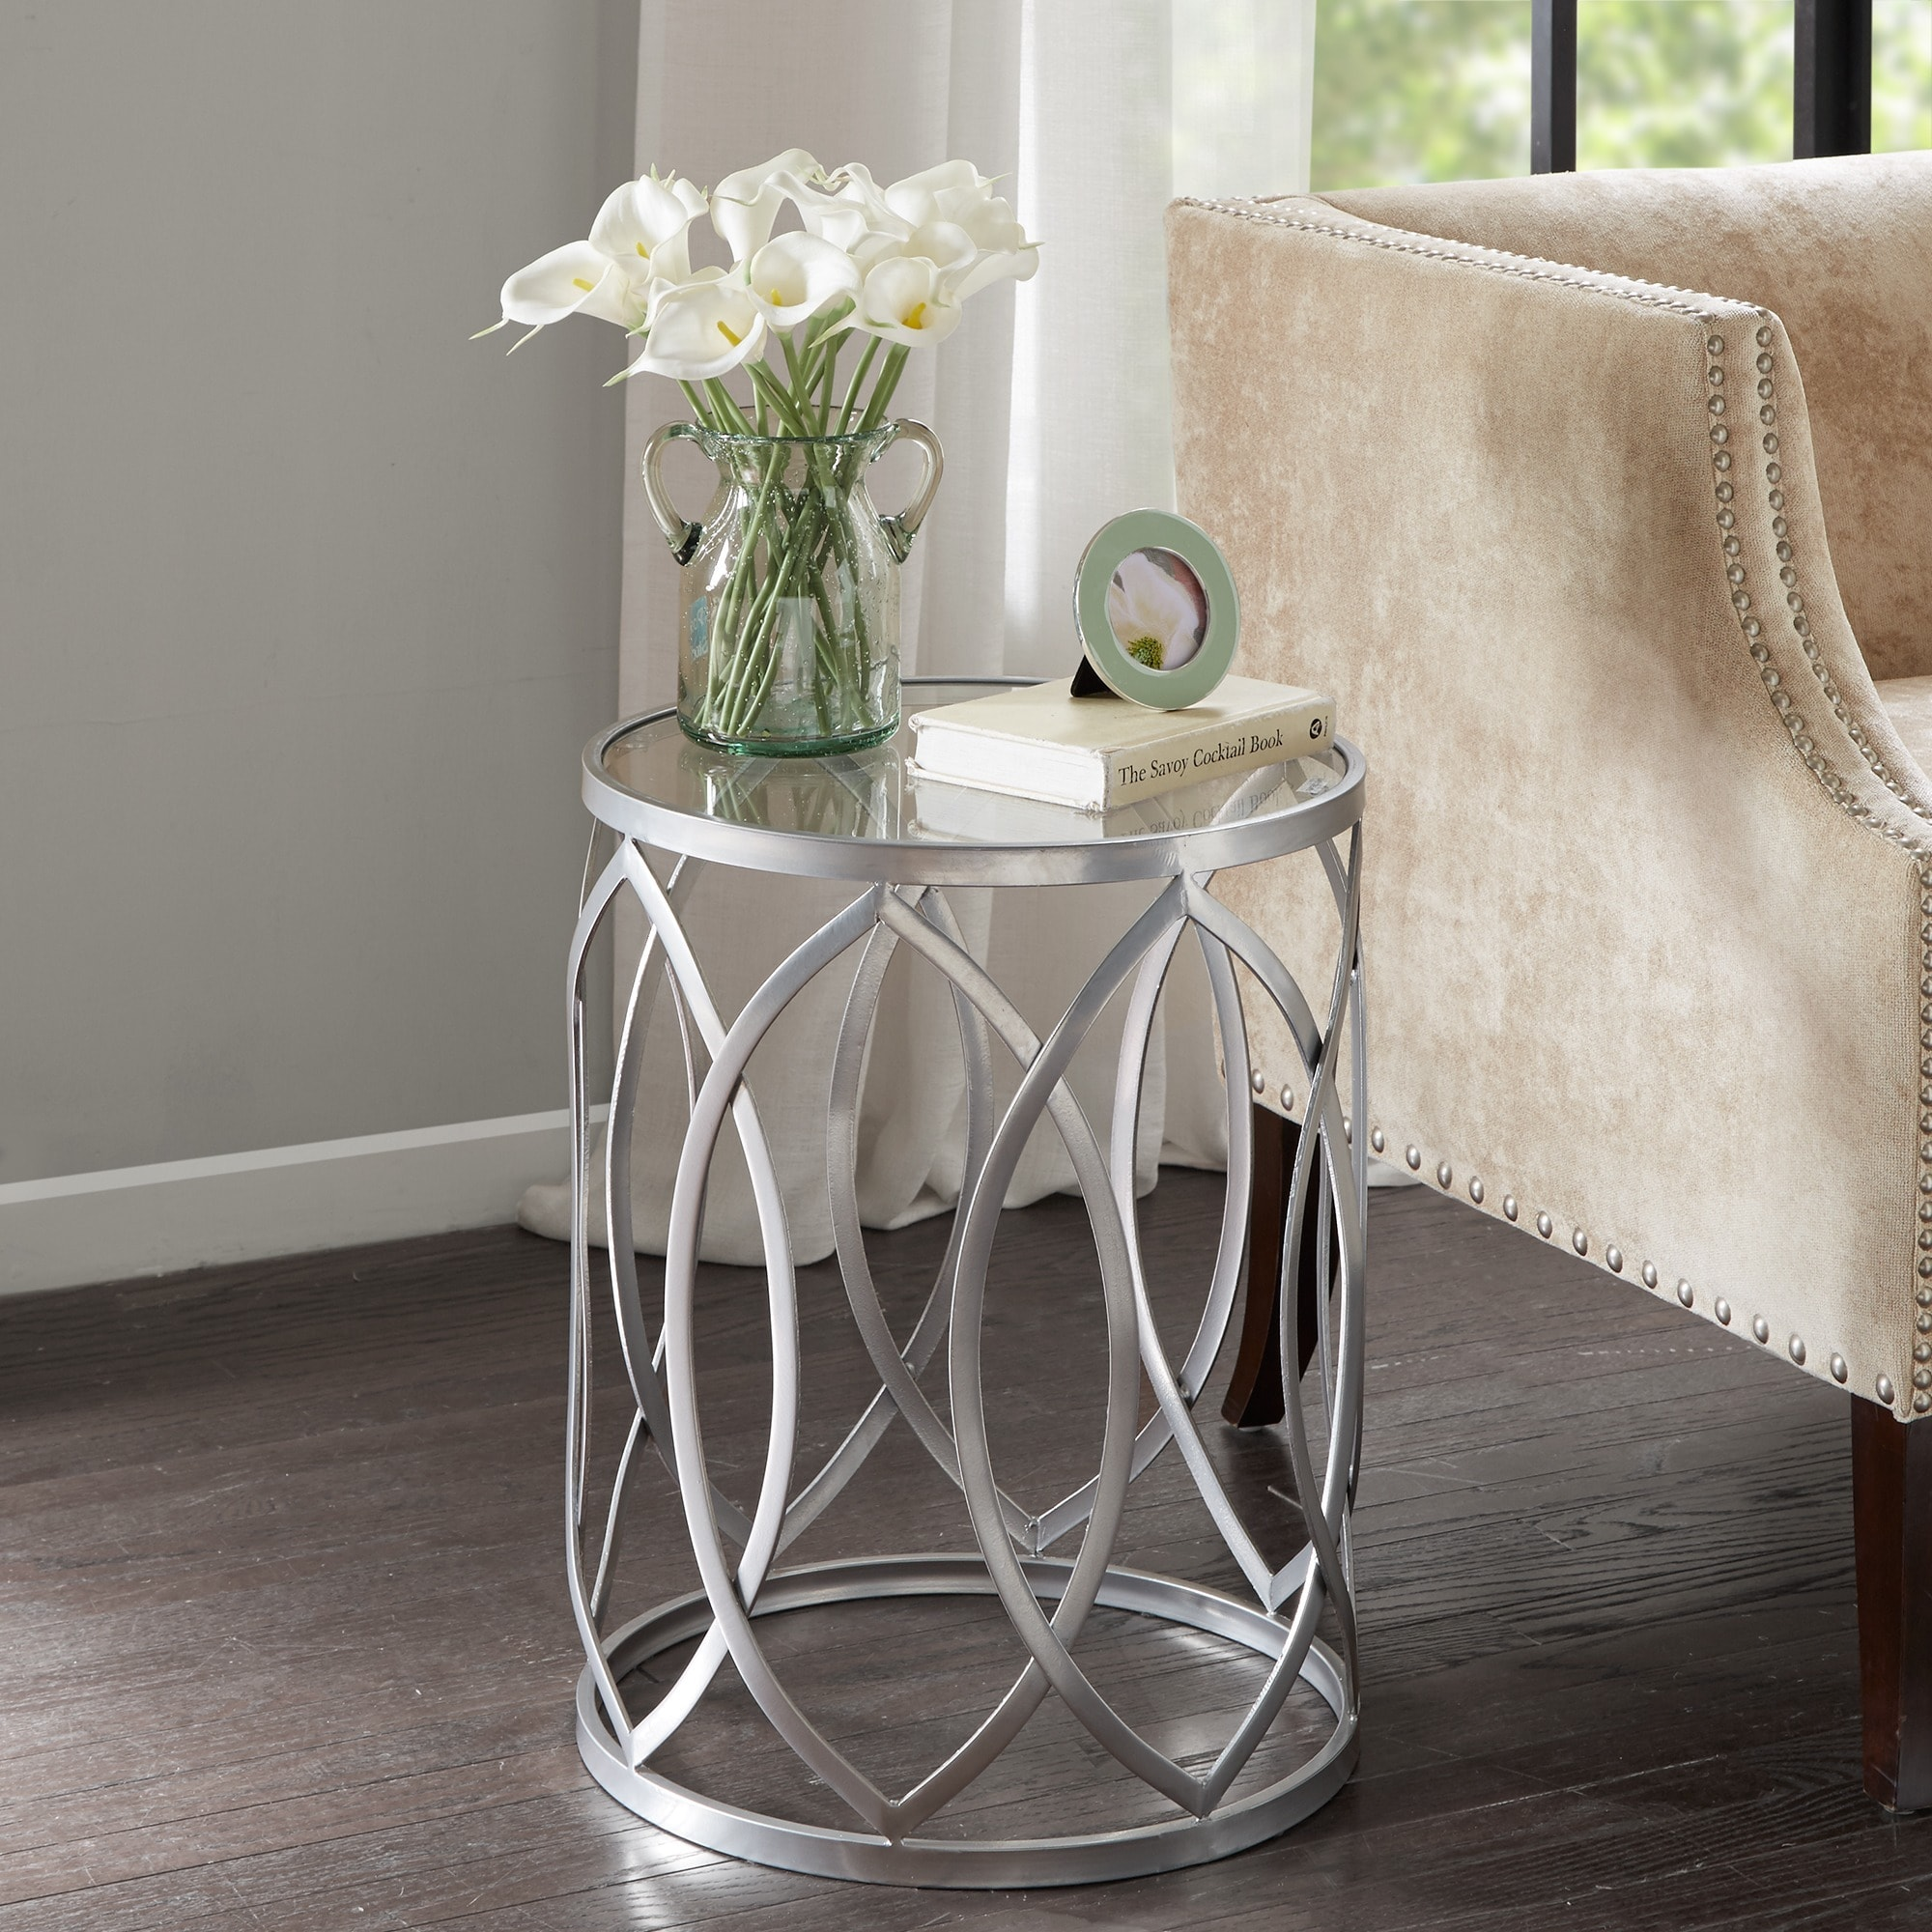 jcpenney end tables the terrific drum style madison park coen metal eyelet accent table free shipping today oak with drawers nice coffee marshalls home goods rugs brass phone